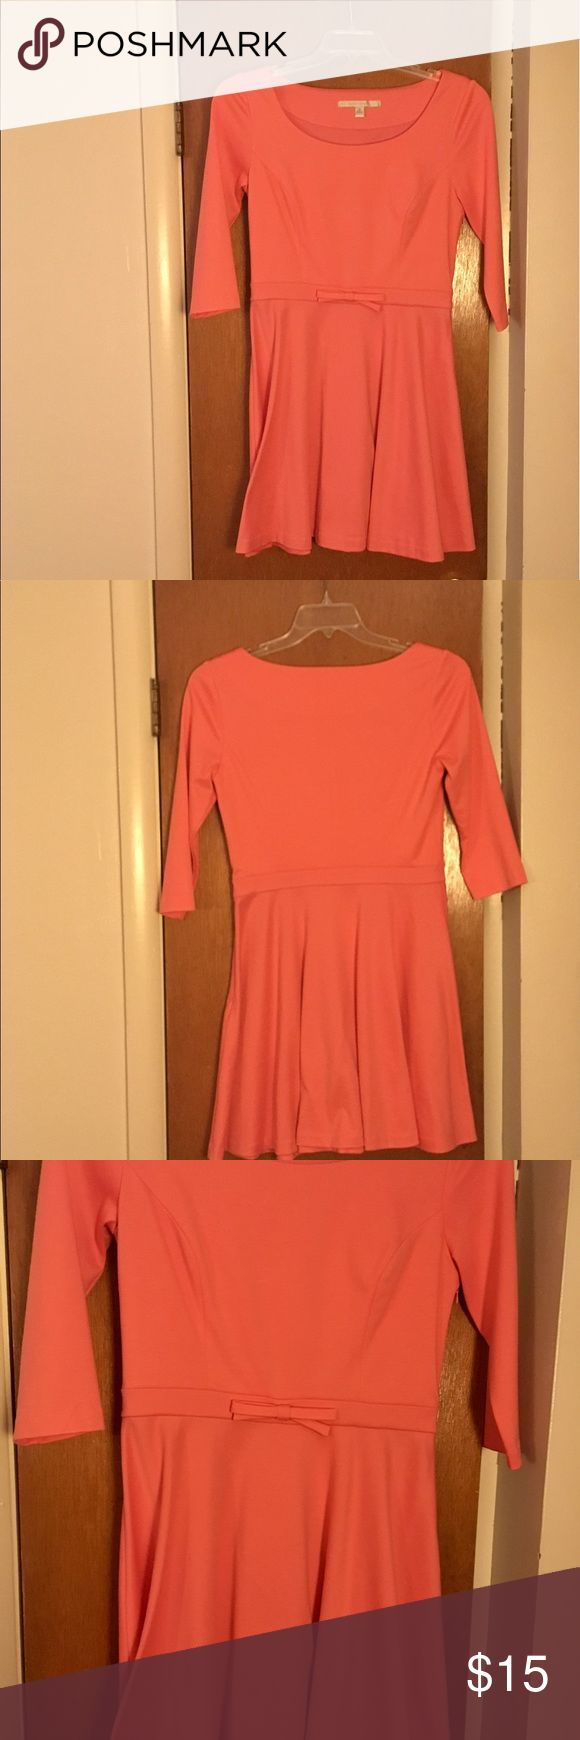 Lauren Conrad Salmon colored dress This dress is such a pretty color! Only worn once, in perfect condition!!! This salmon color would look beautiful with a nice tan and nude heels! Comfortable and has nice stretch! #laurenconrad #salmon #orange #dress #pretty #feminine #perfectcondition #tan #nudeheels #stretchy #comfortable LC Lauren Conrad Dresses Midi